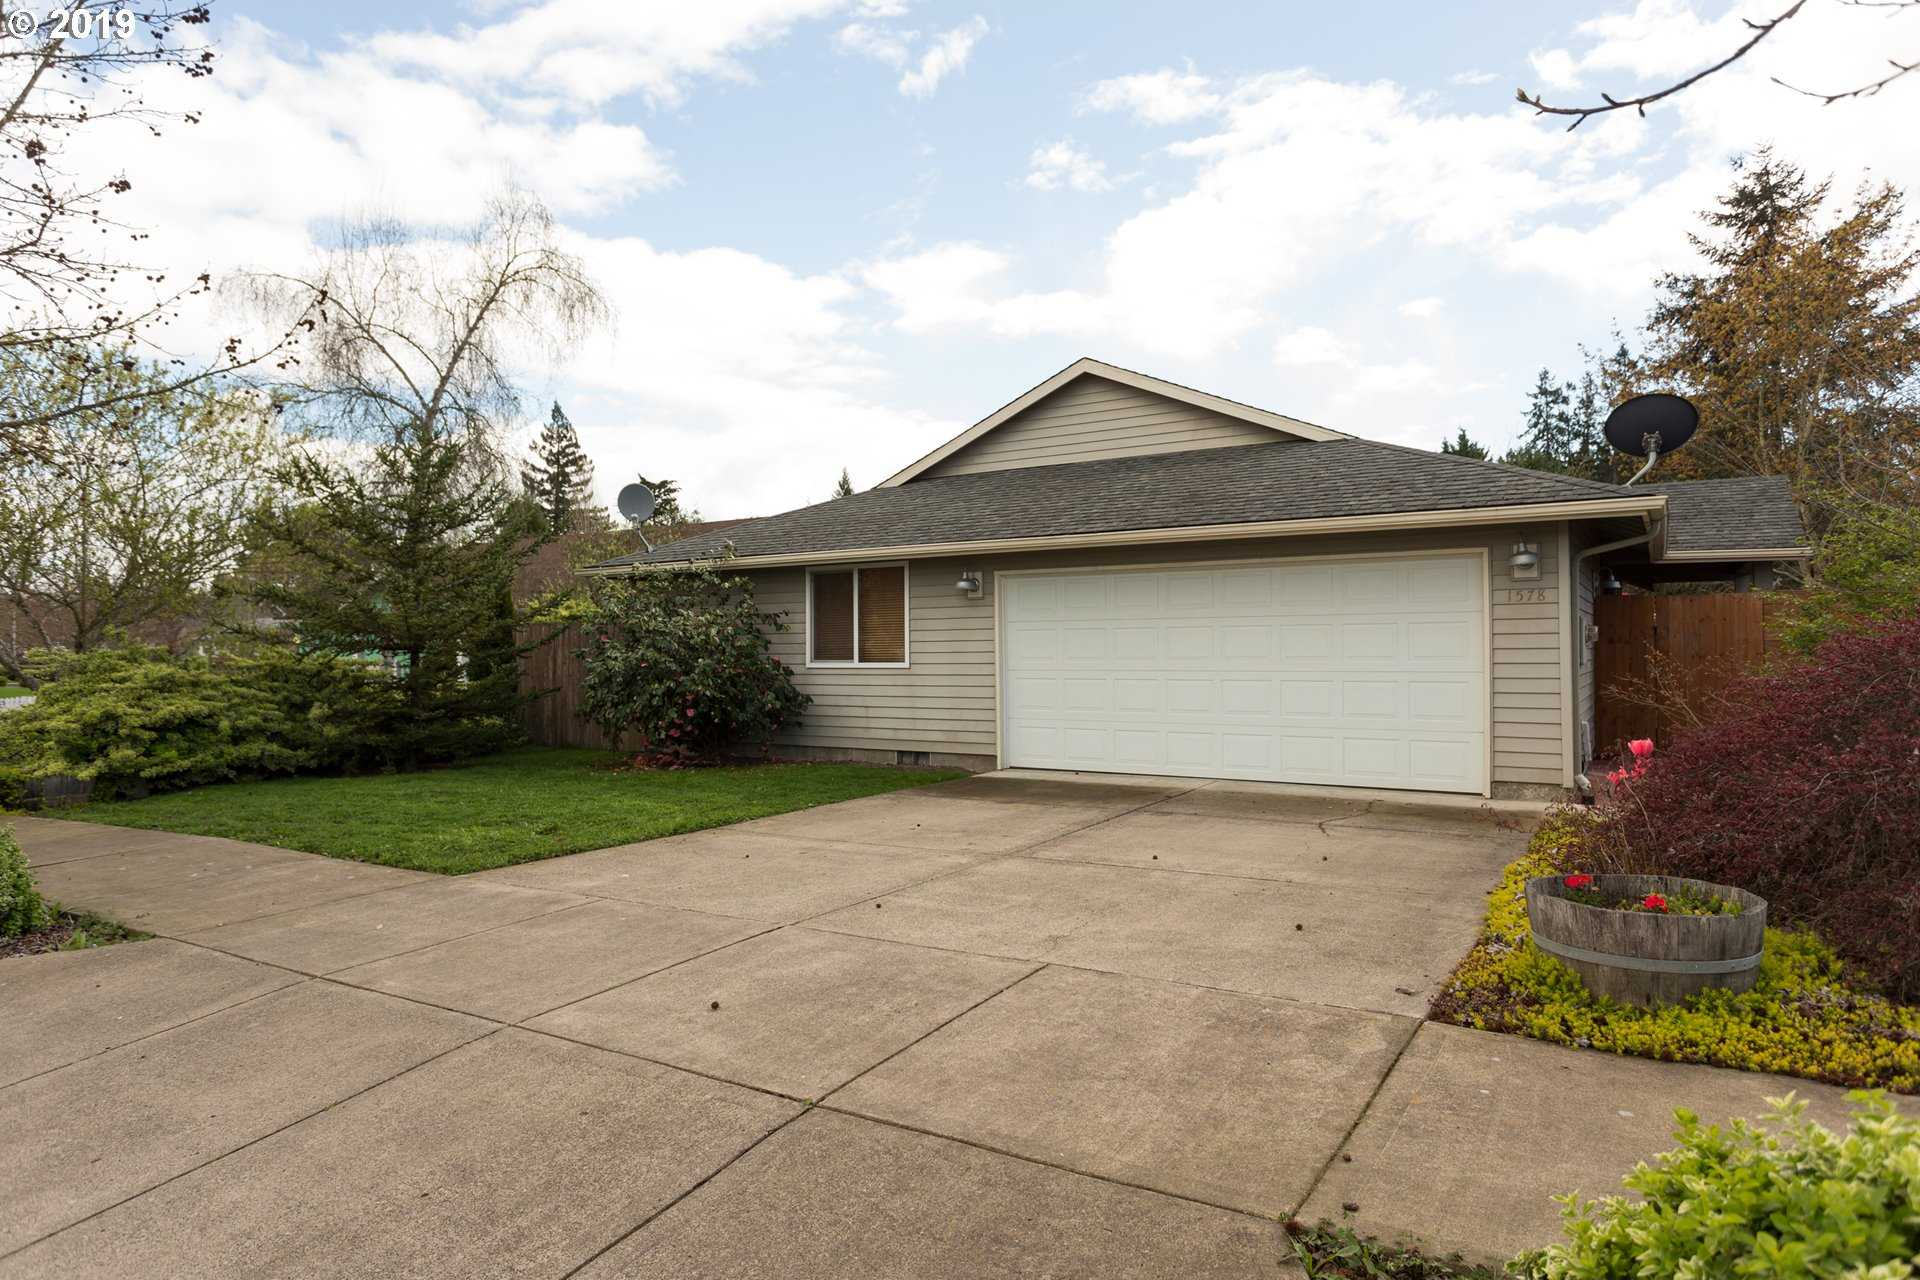 $289,900 - 3Br/2Ba -  for Sale in Mcminnville